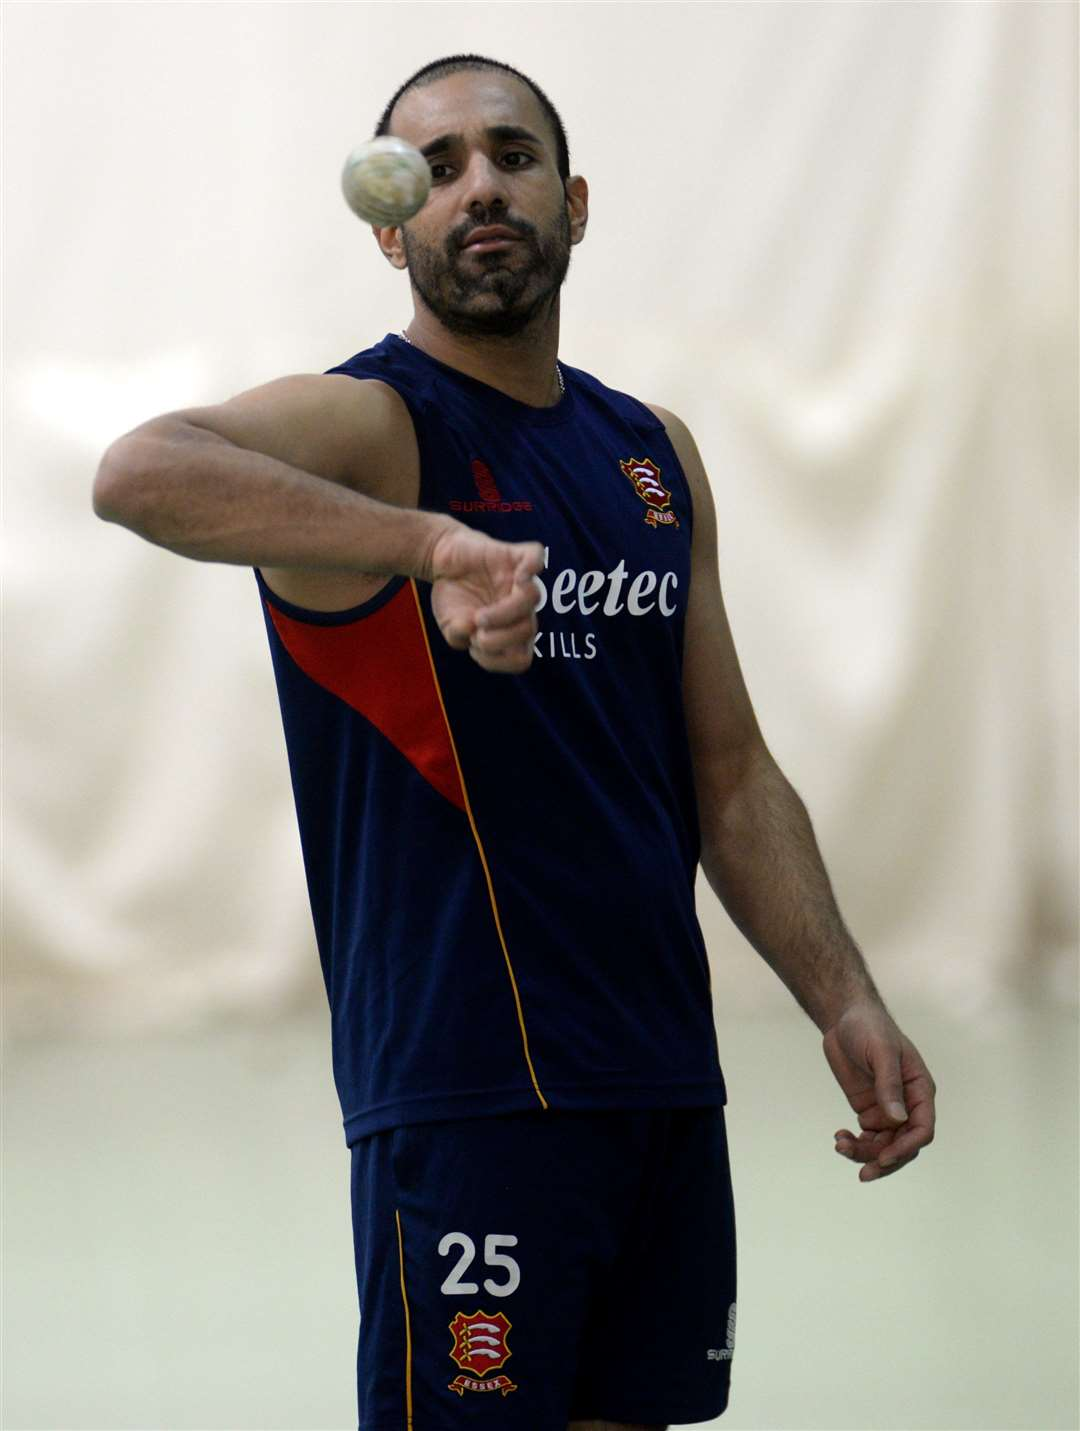 HECC, Rooks Farm, High Wych.Essex CC winter indoor training at the cricket centre. Ravi Bopara. .Pic: Vikki Lince. (15599982)